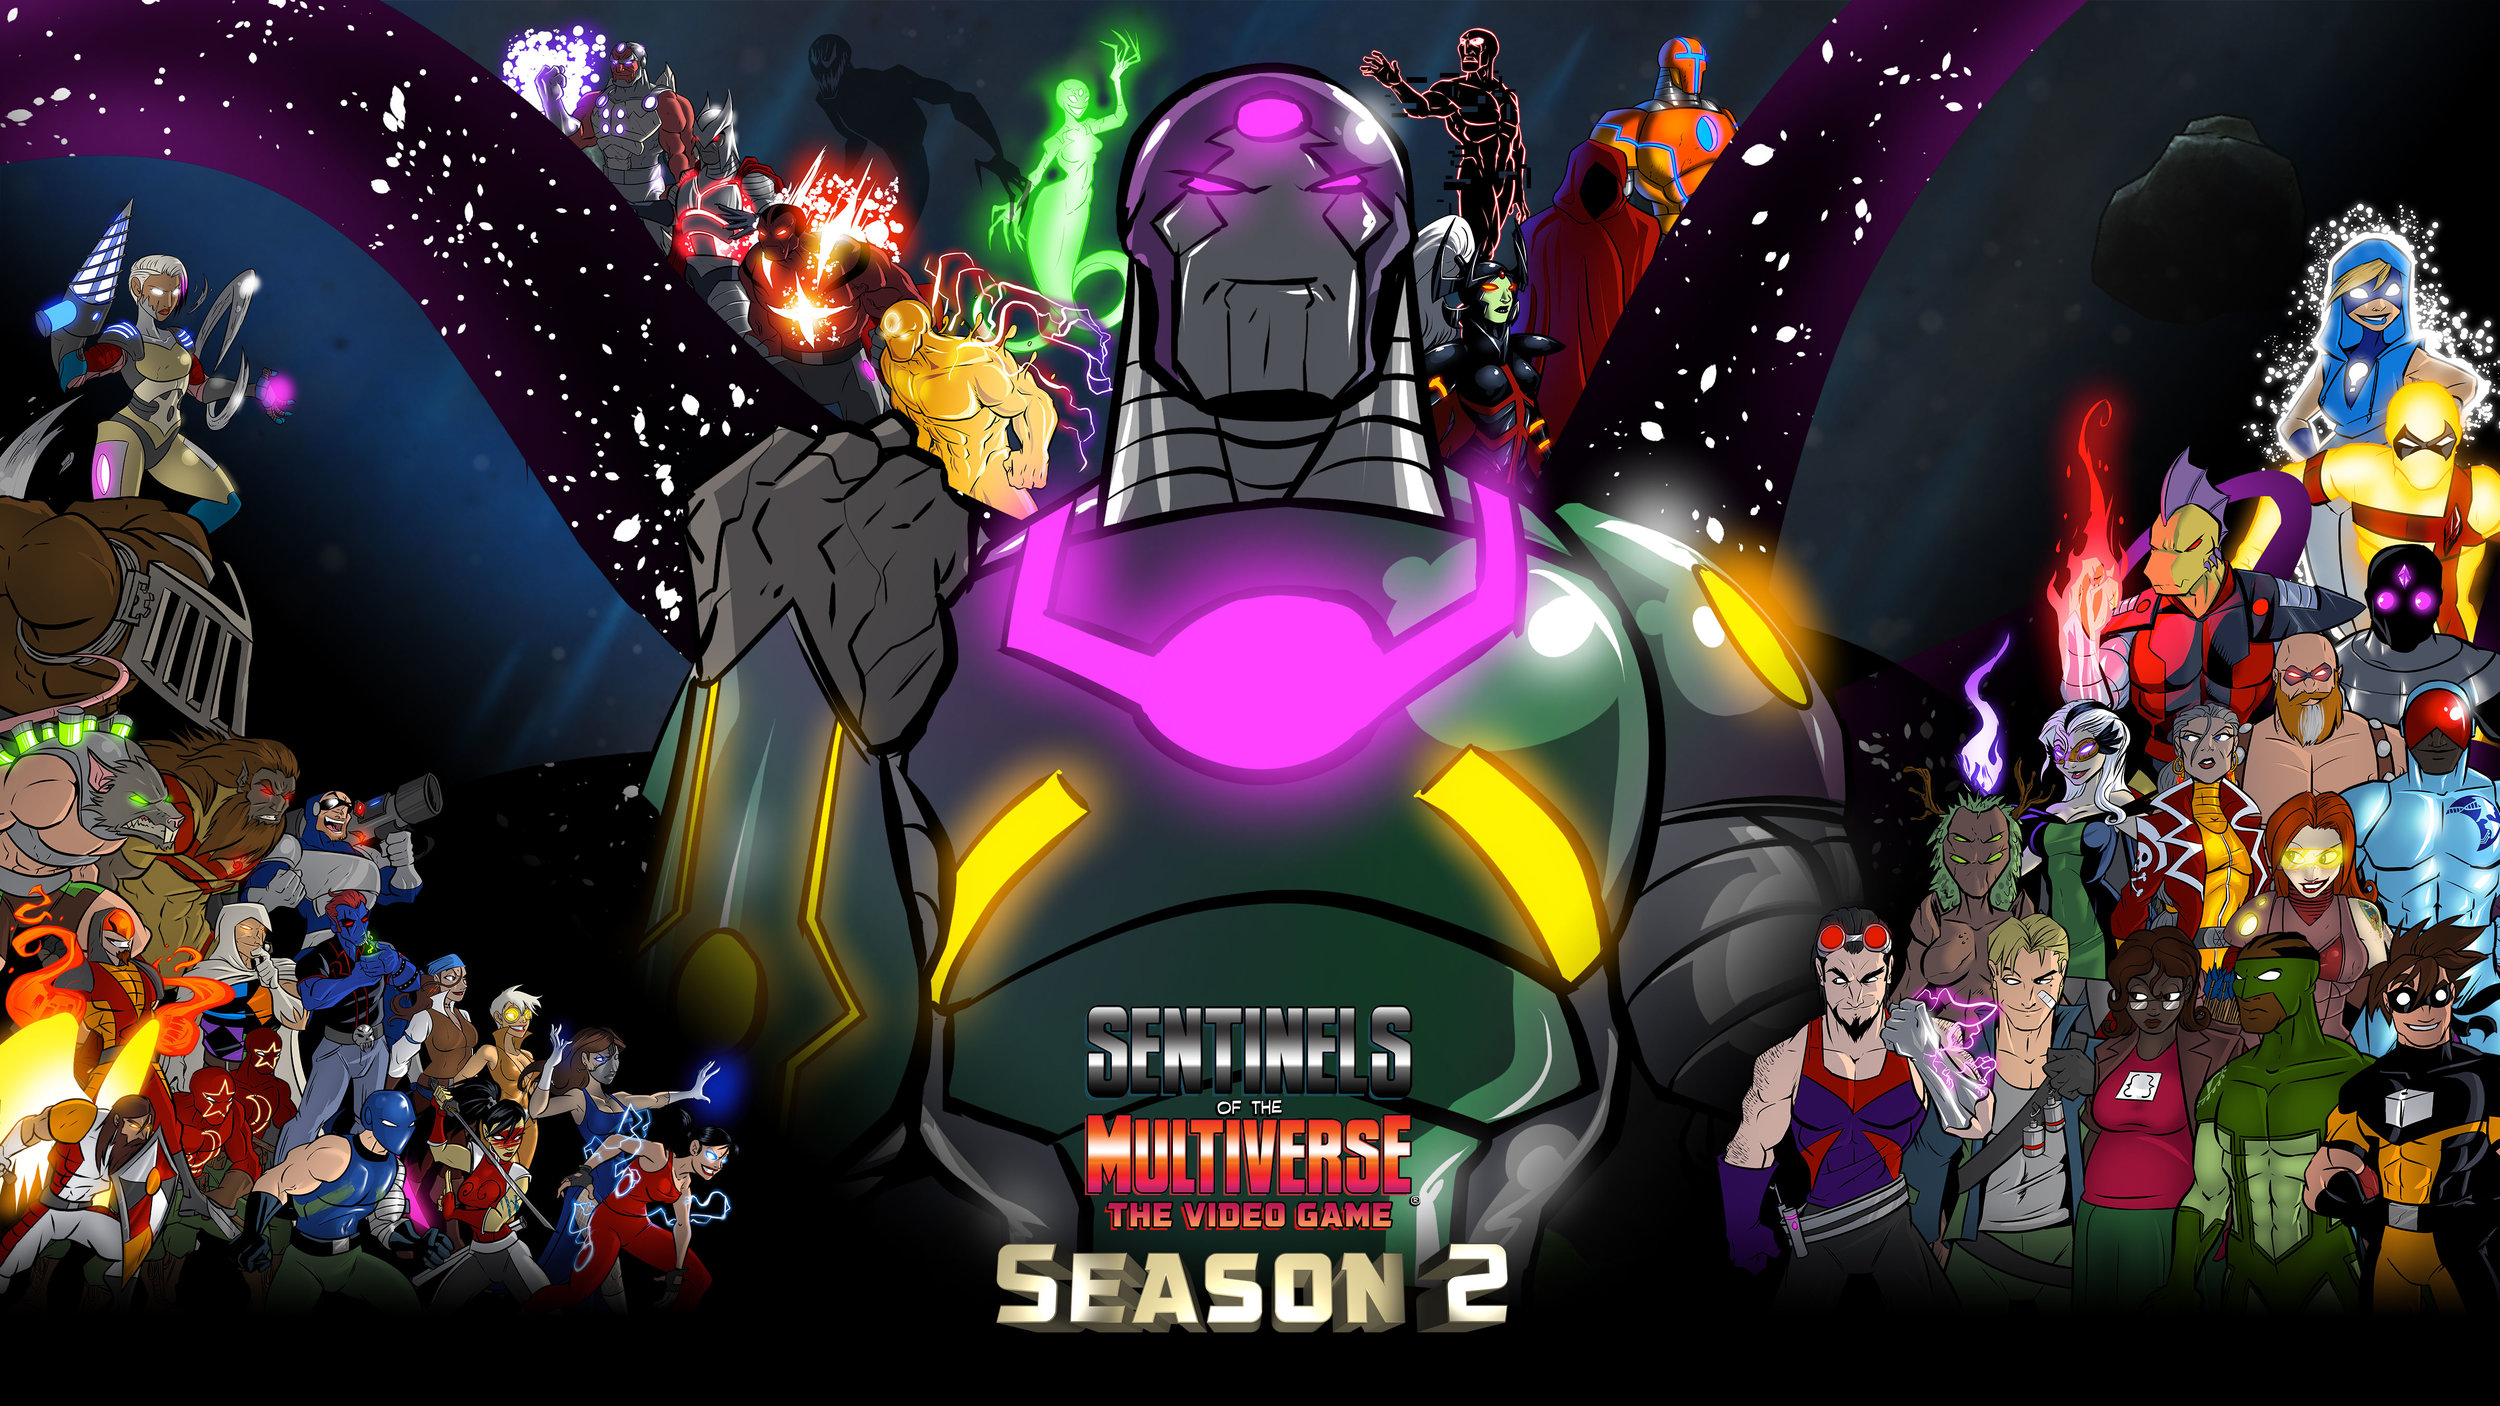 Click to download the the Season 2 wallpaper!